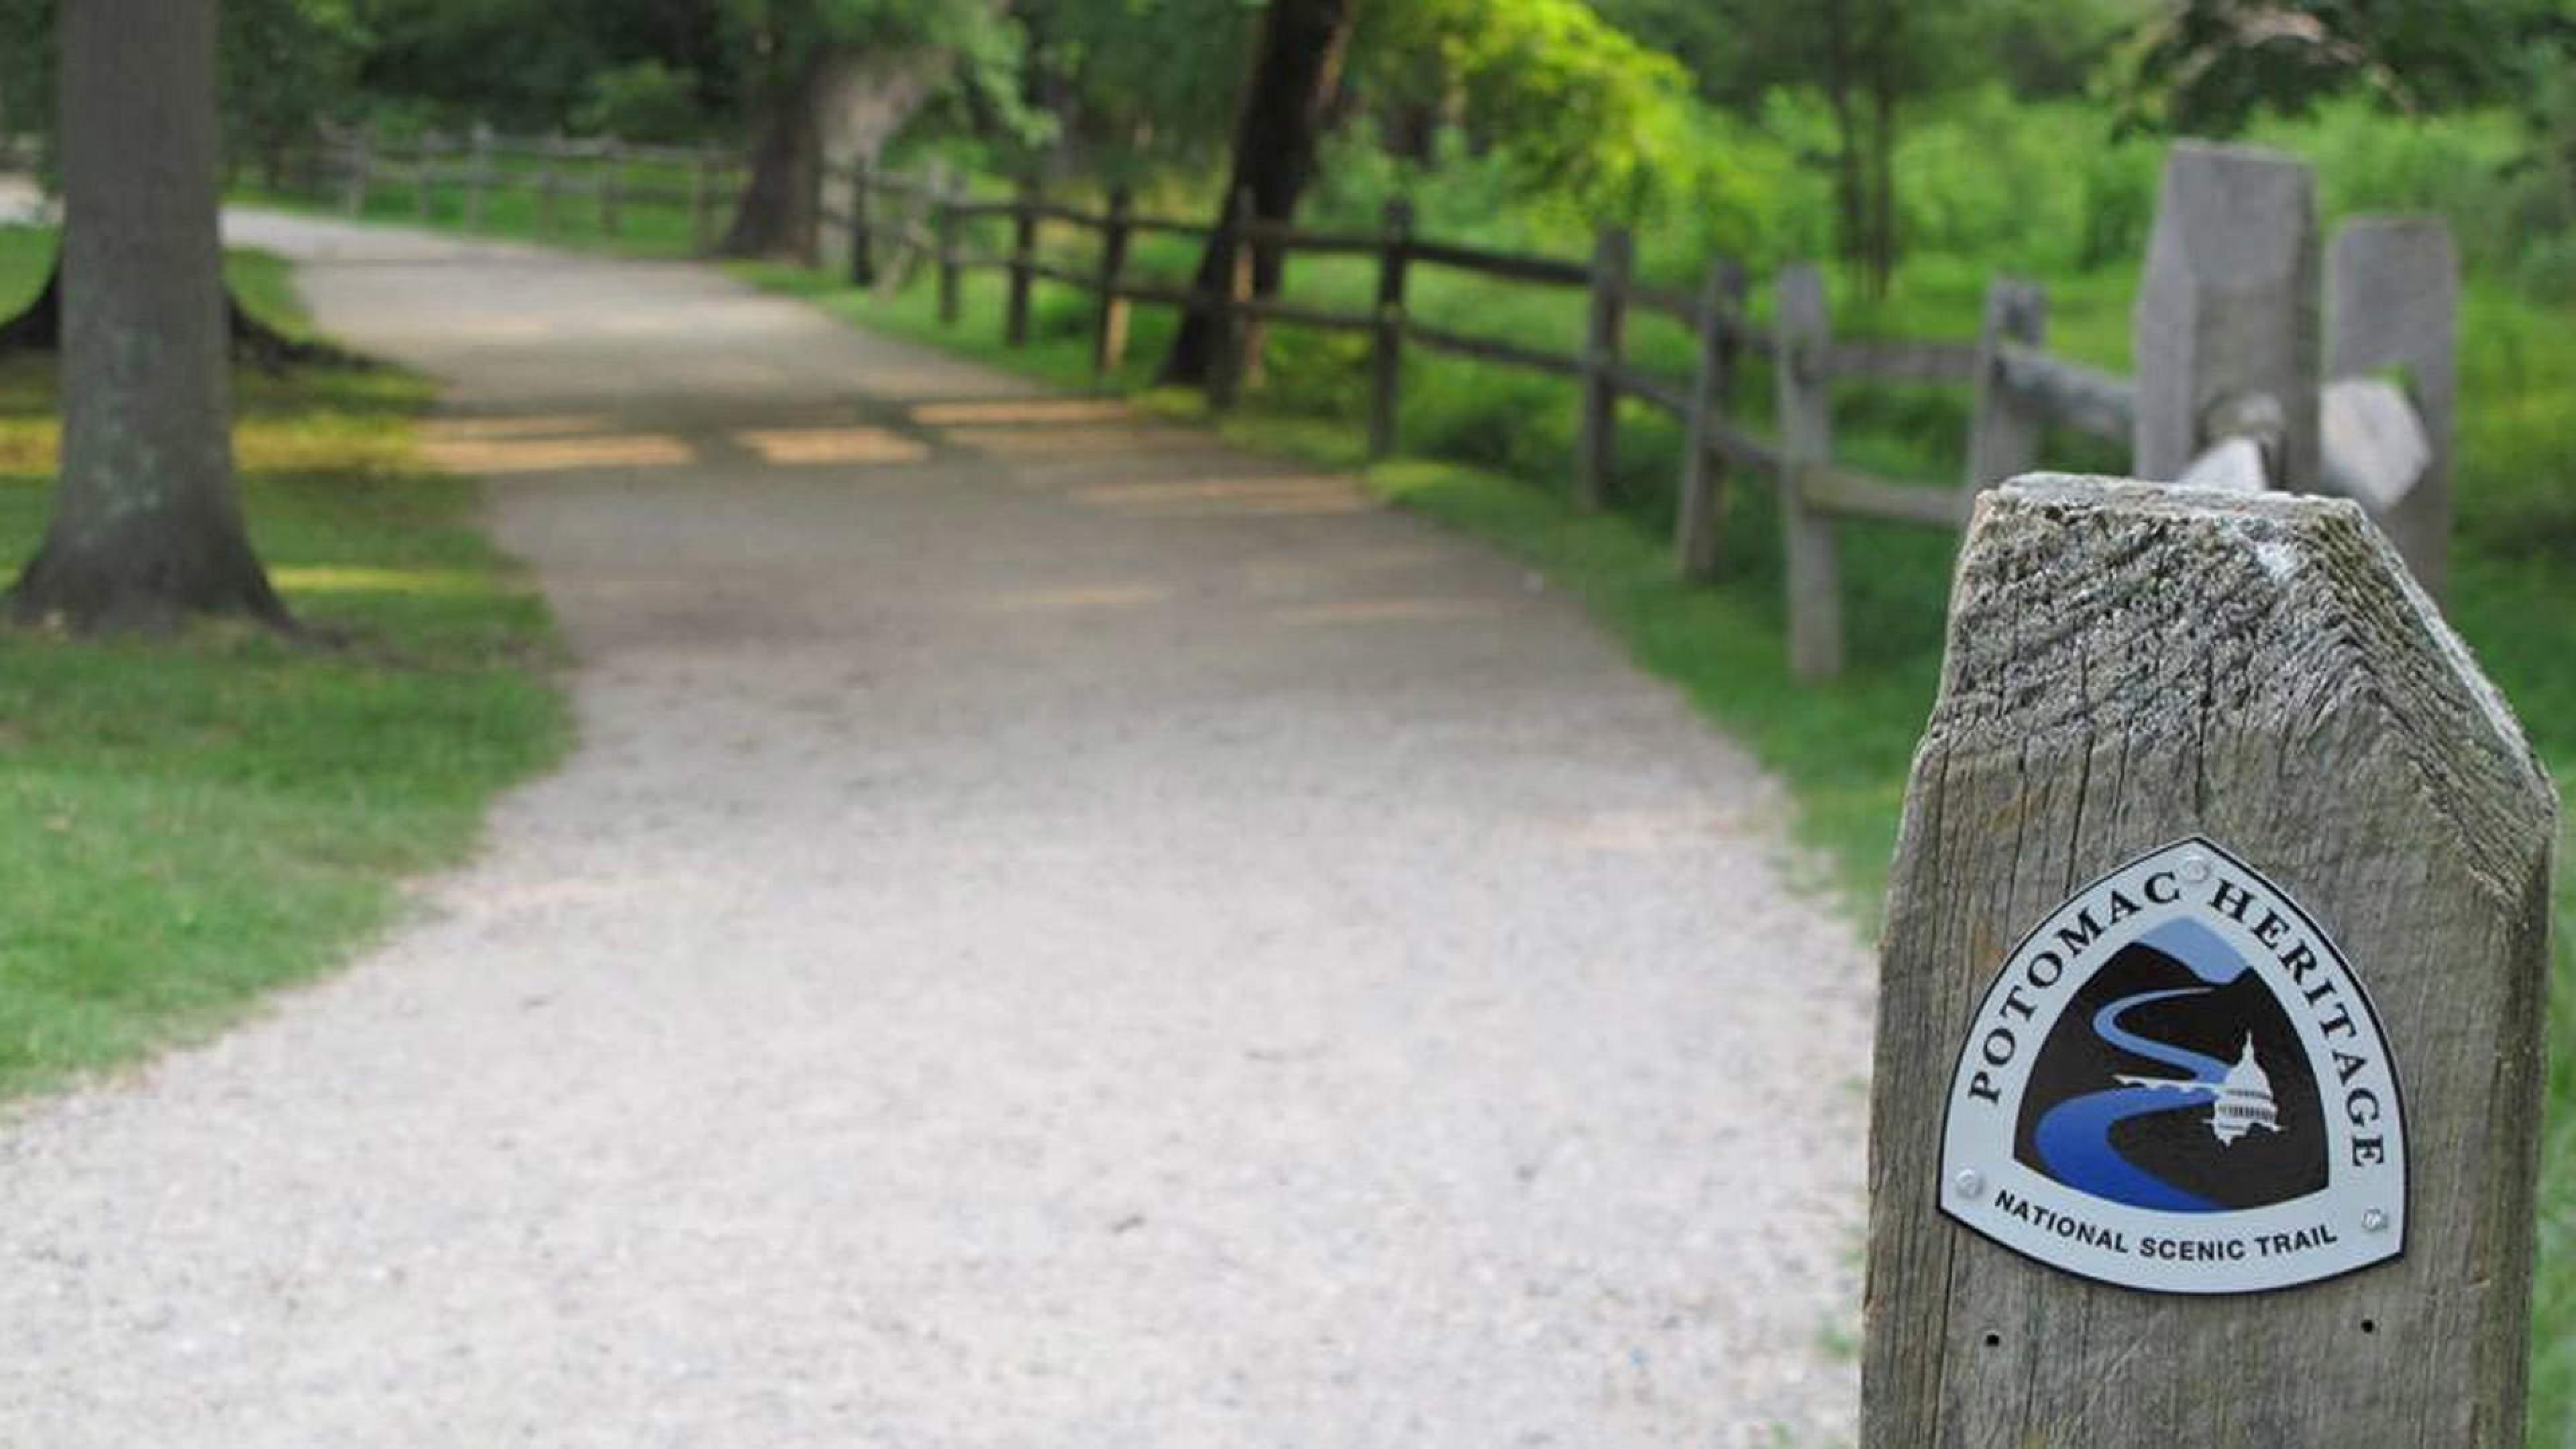 Signpost marks the start of gravel trail along rustic fence and trees